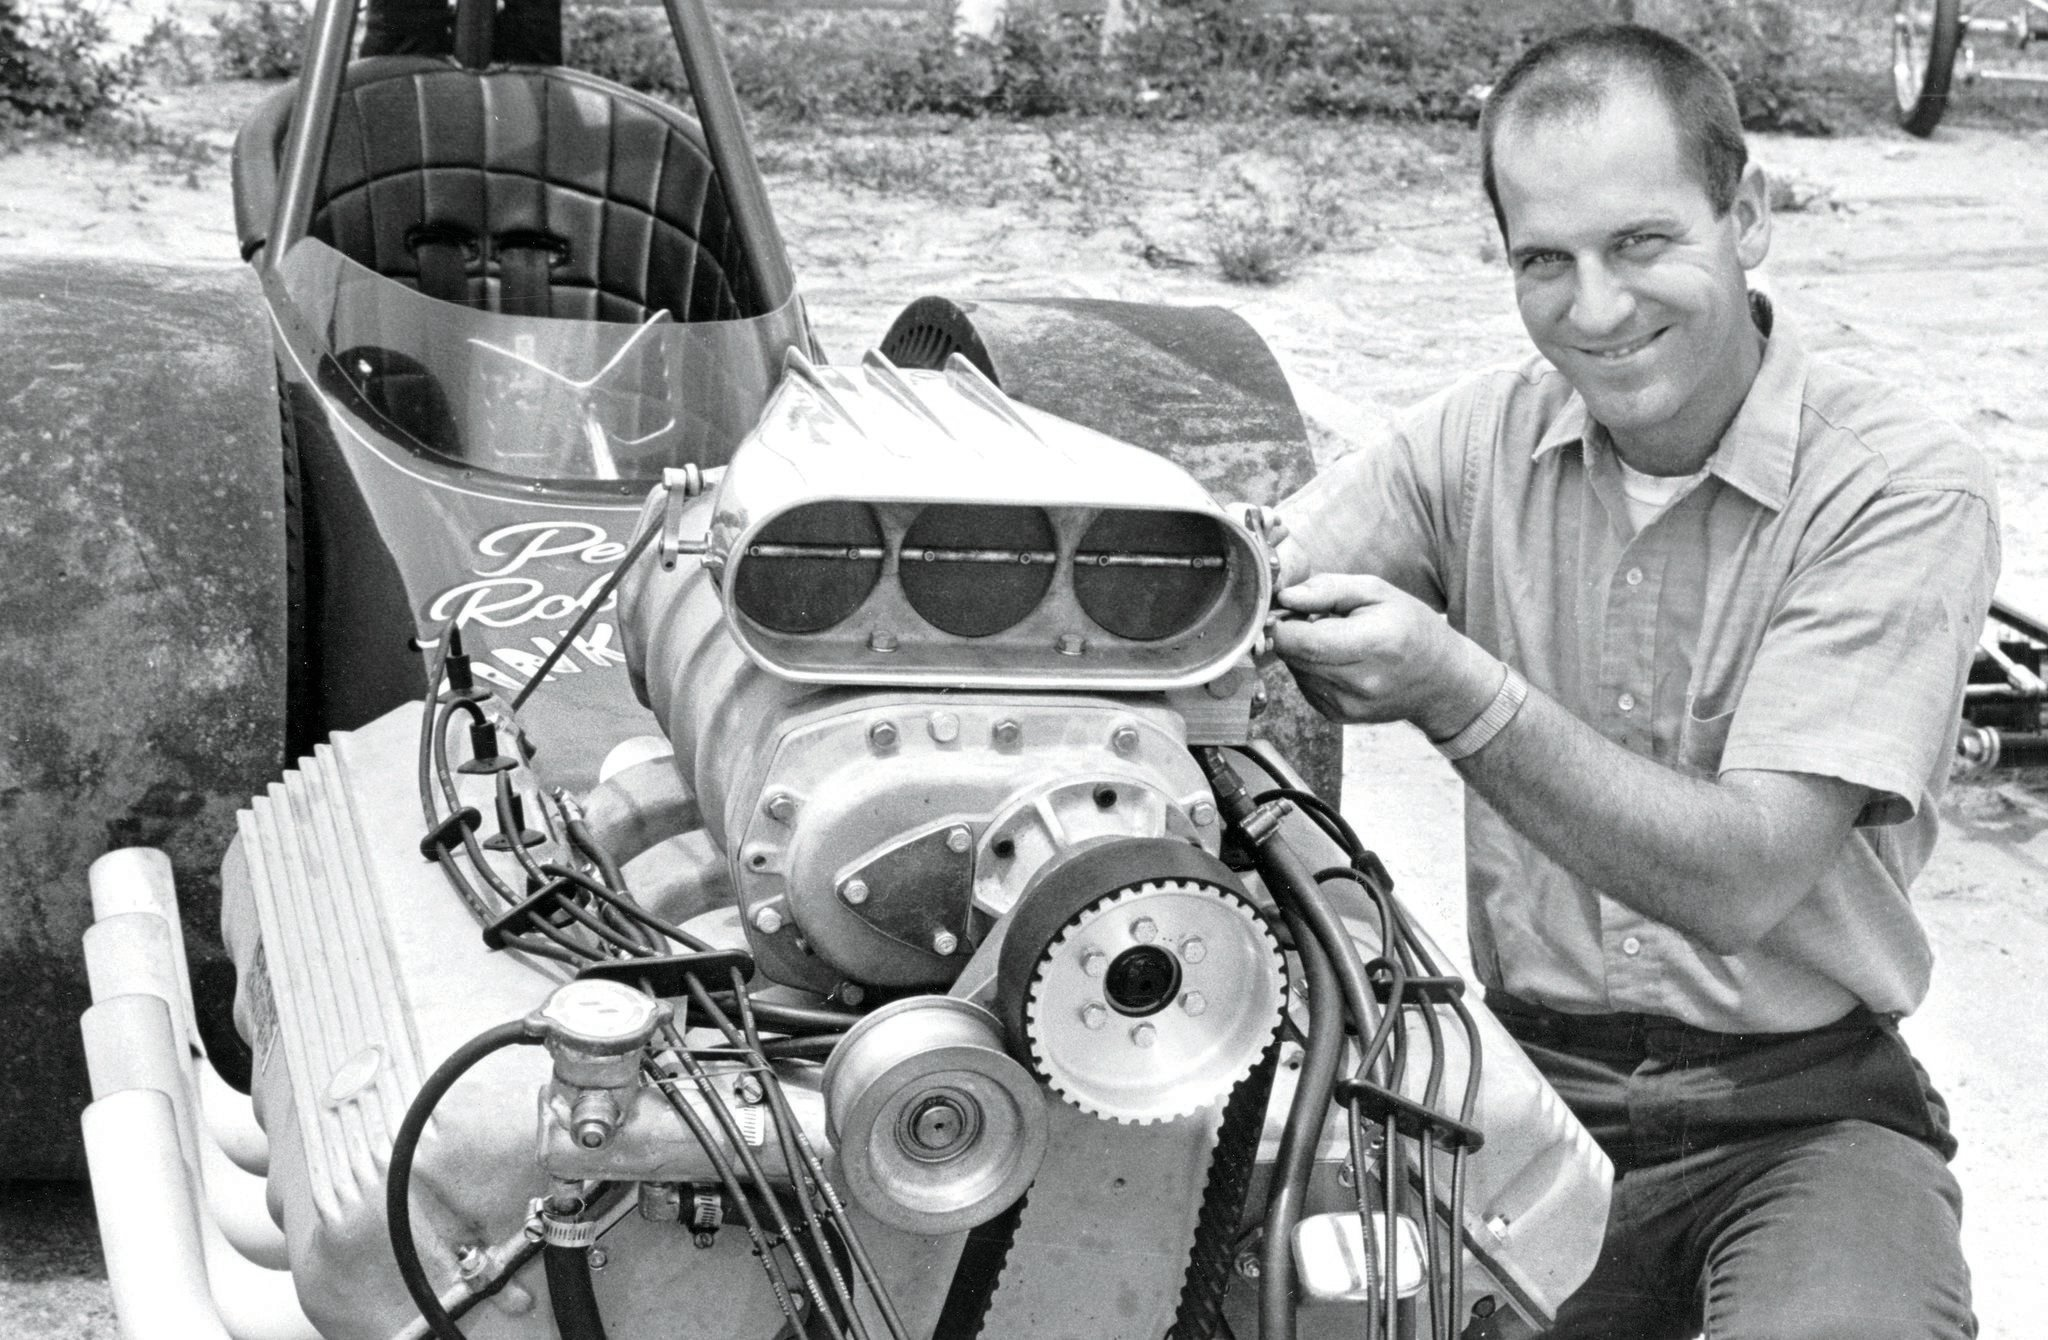 Pete is wearing his usual smile. This 1966 photo shows the 2-inch blower drive (a 3-inch version weighed a few pounds more, so he rejected it) system that he used for his early 'Cammers. He had no belt problems. But a year later, blower overdrive dictated the 3-inch setup. The cams in this engine were still chained together.